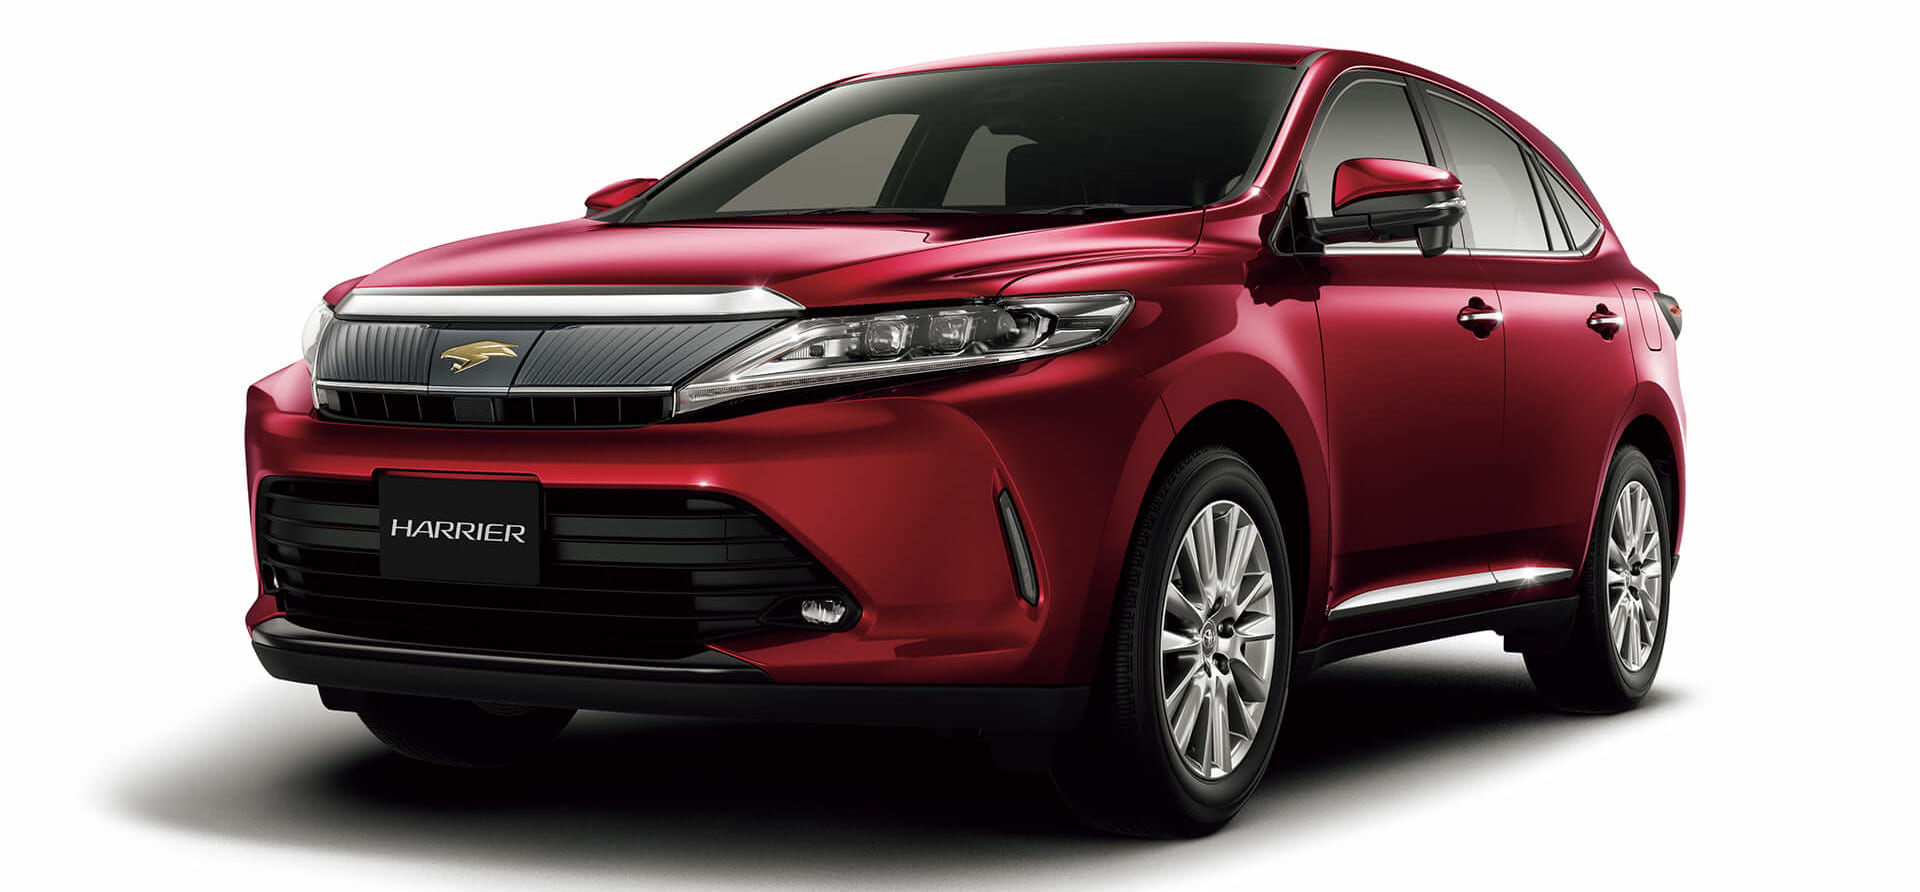 Toyota_harrier_DBA-ZSU60W-ANXGP_front_side